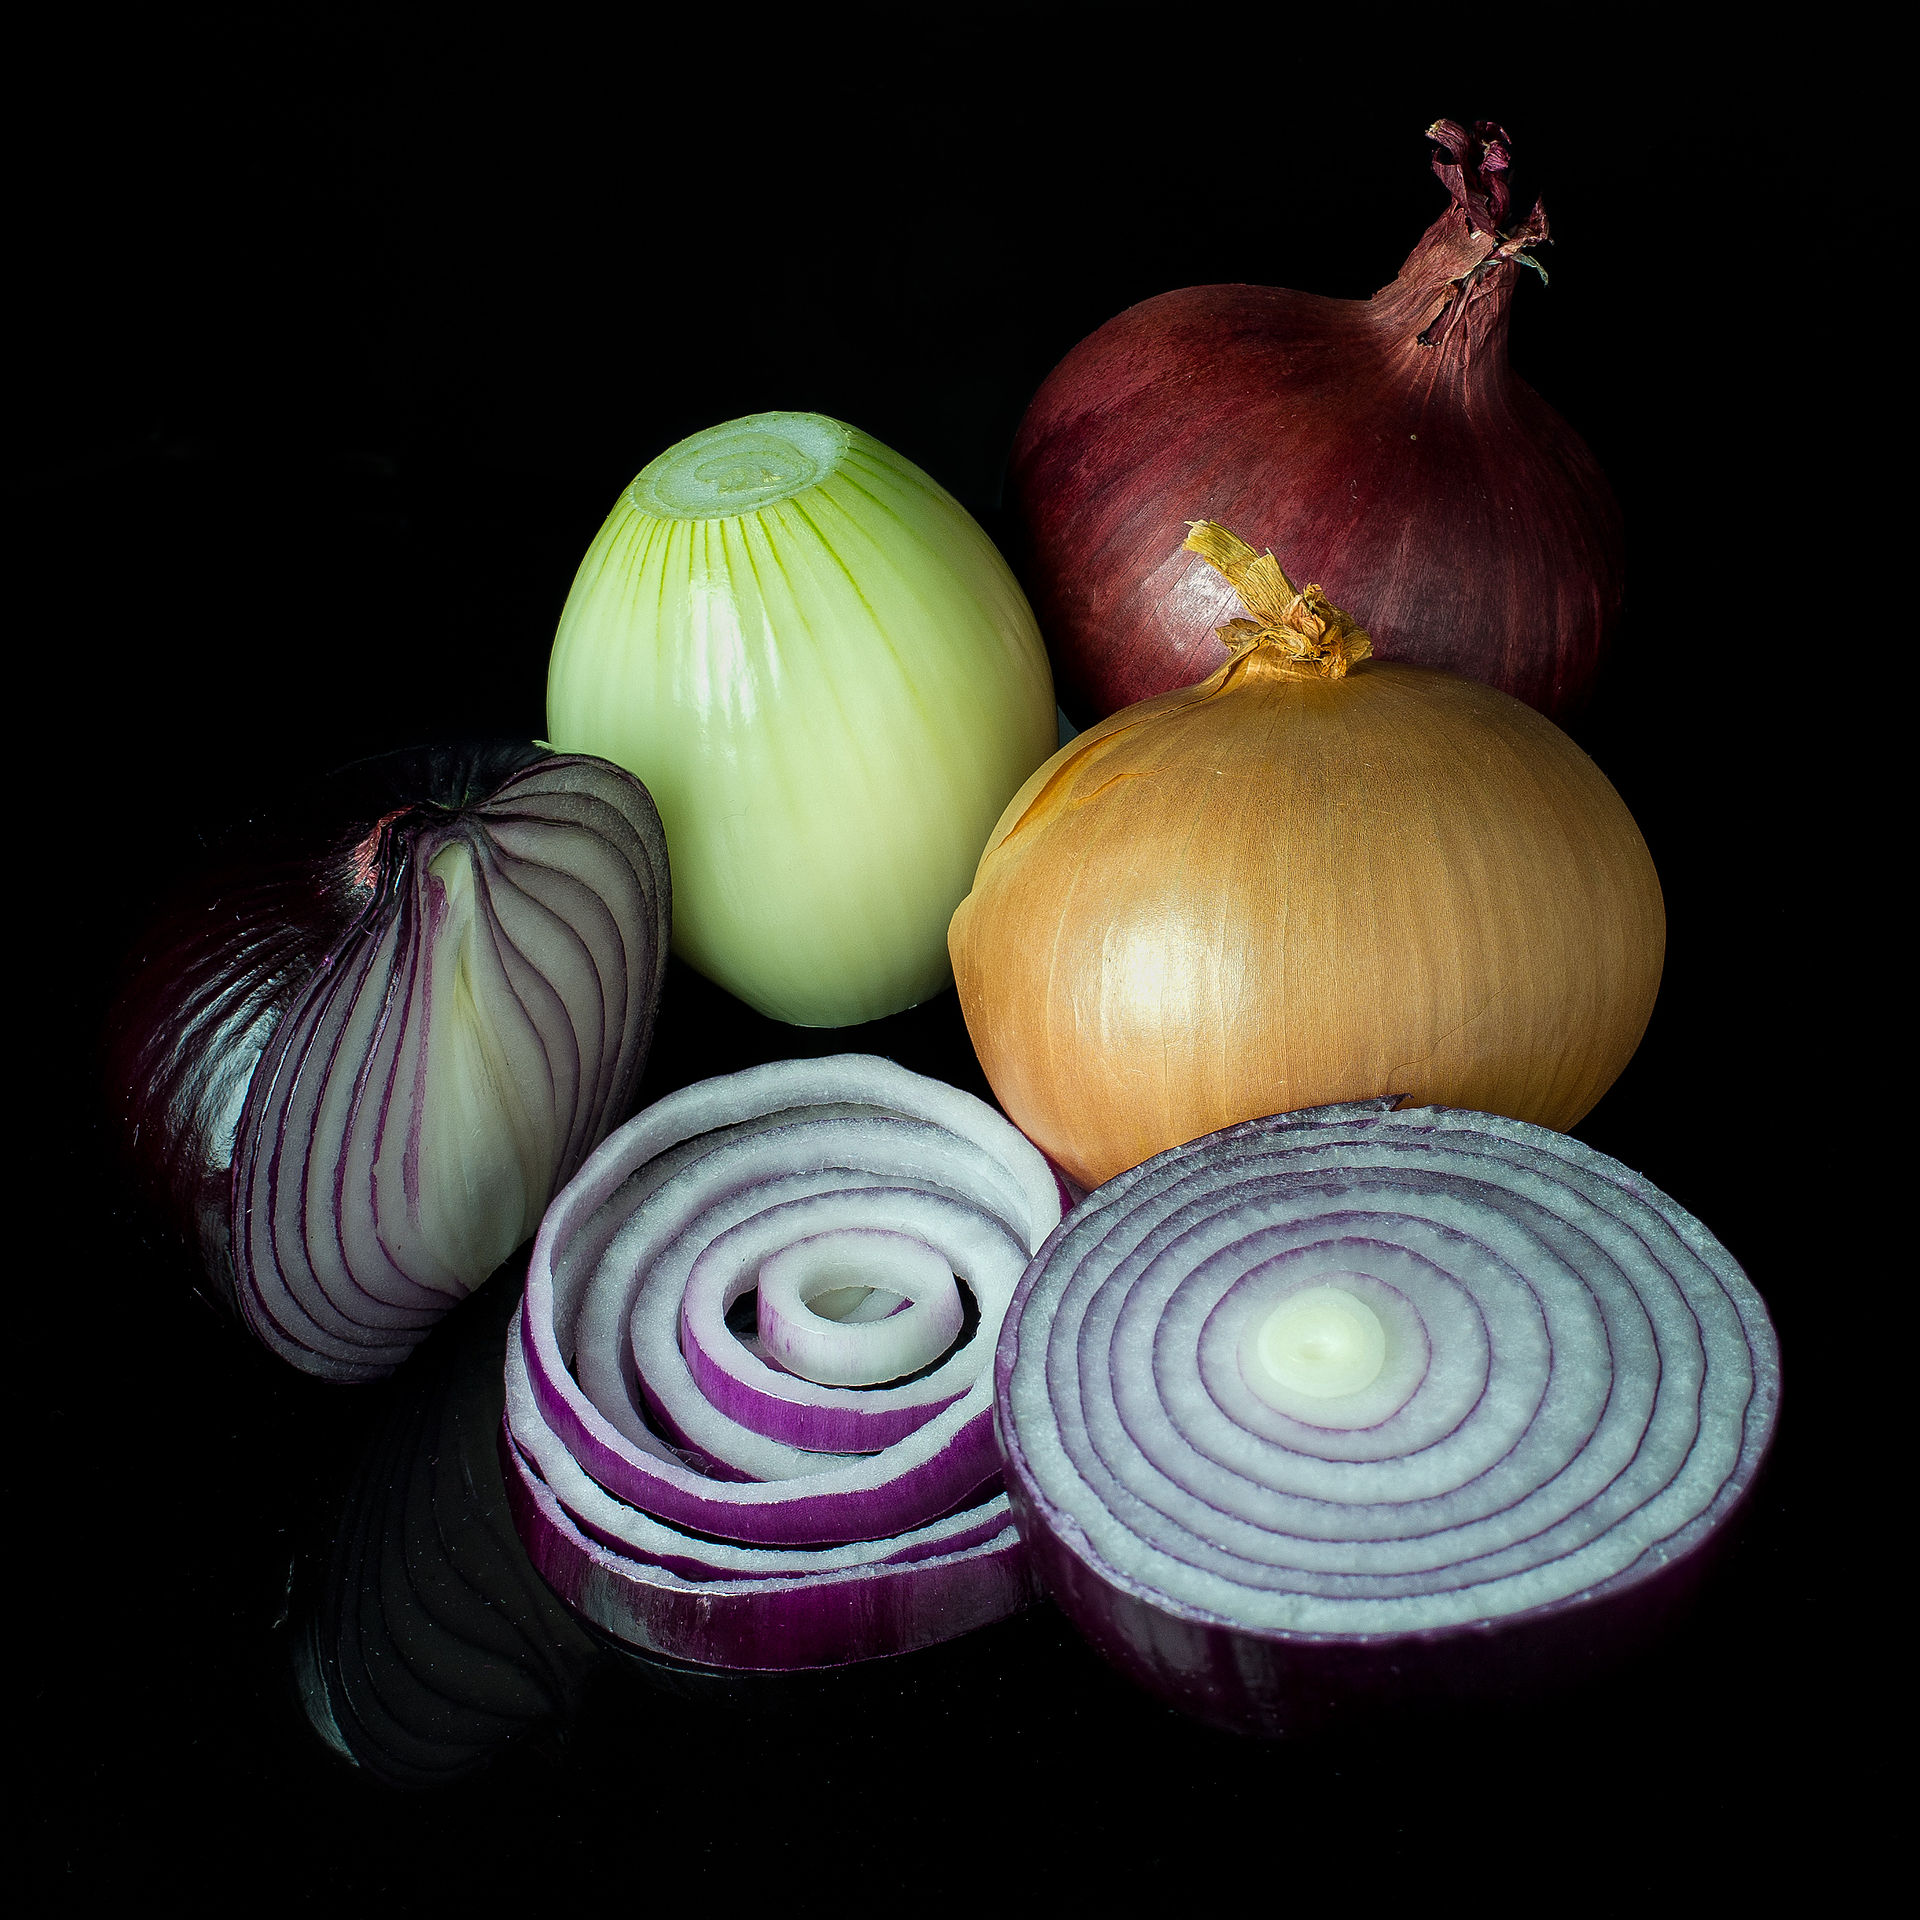 image of onion